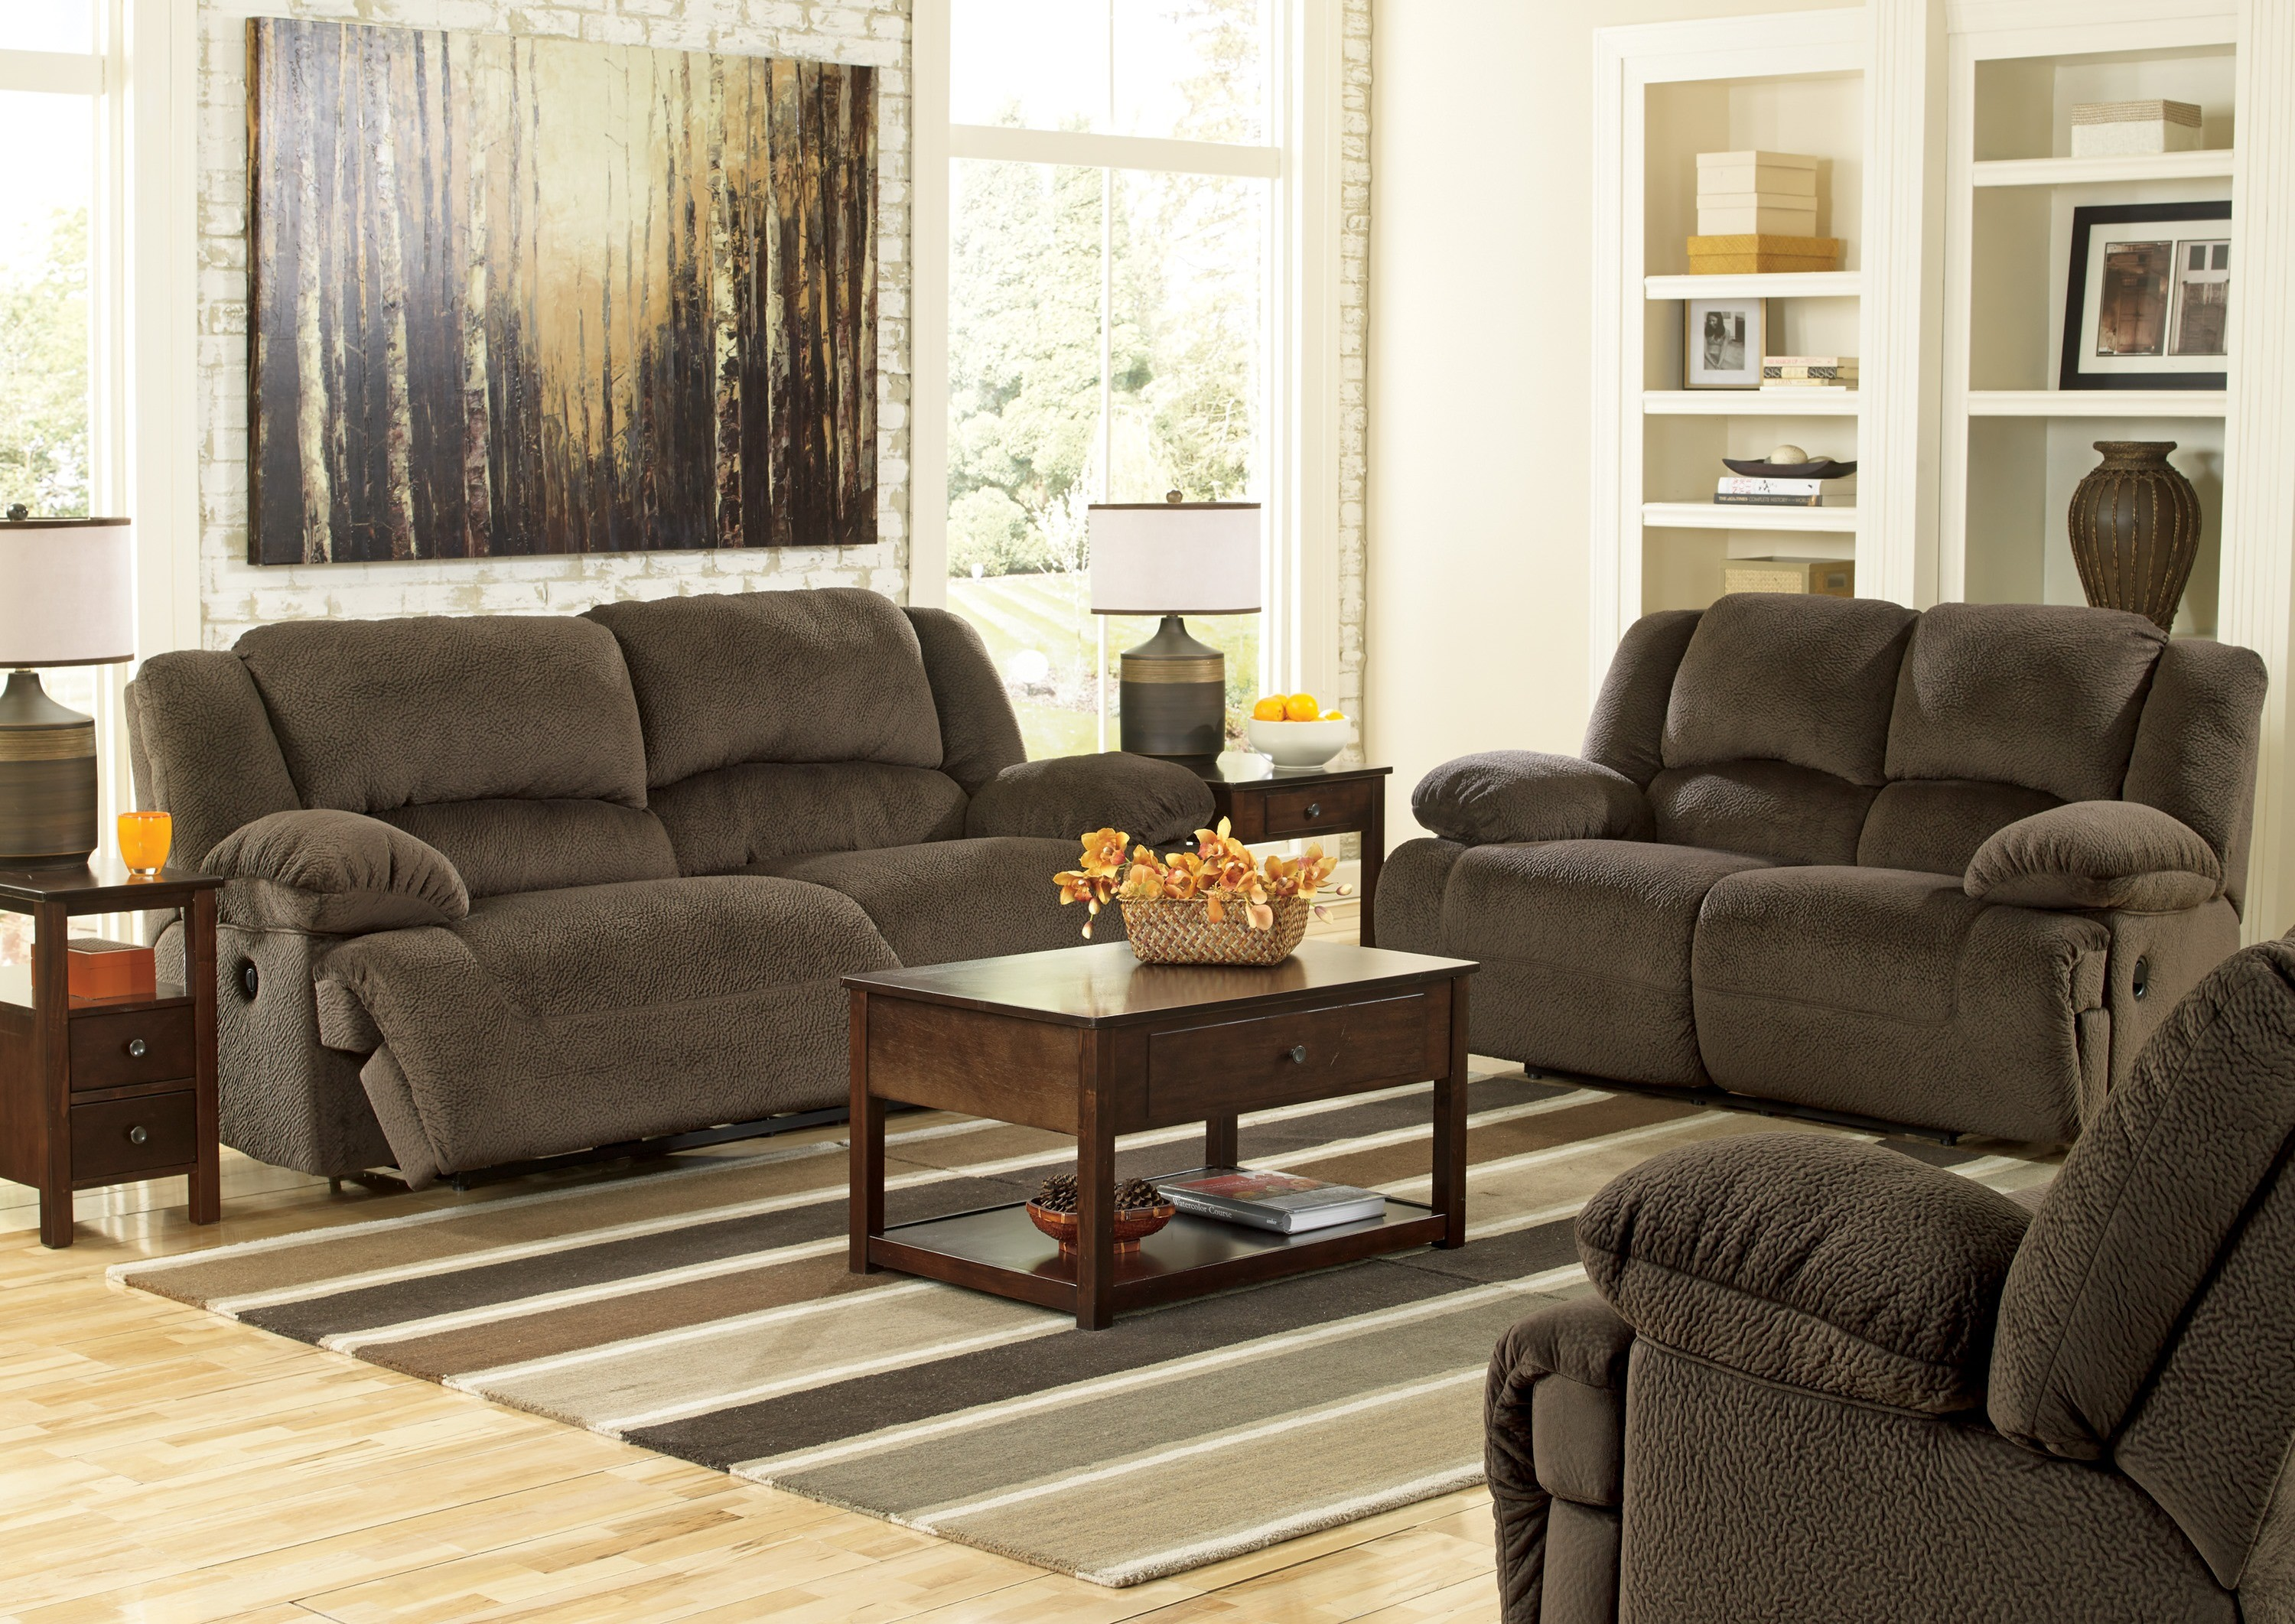 Living Room Furniture: Toletta Chocolate Living Room Set From Ashley (5670181-86